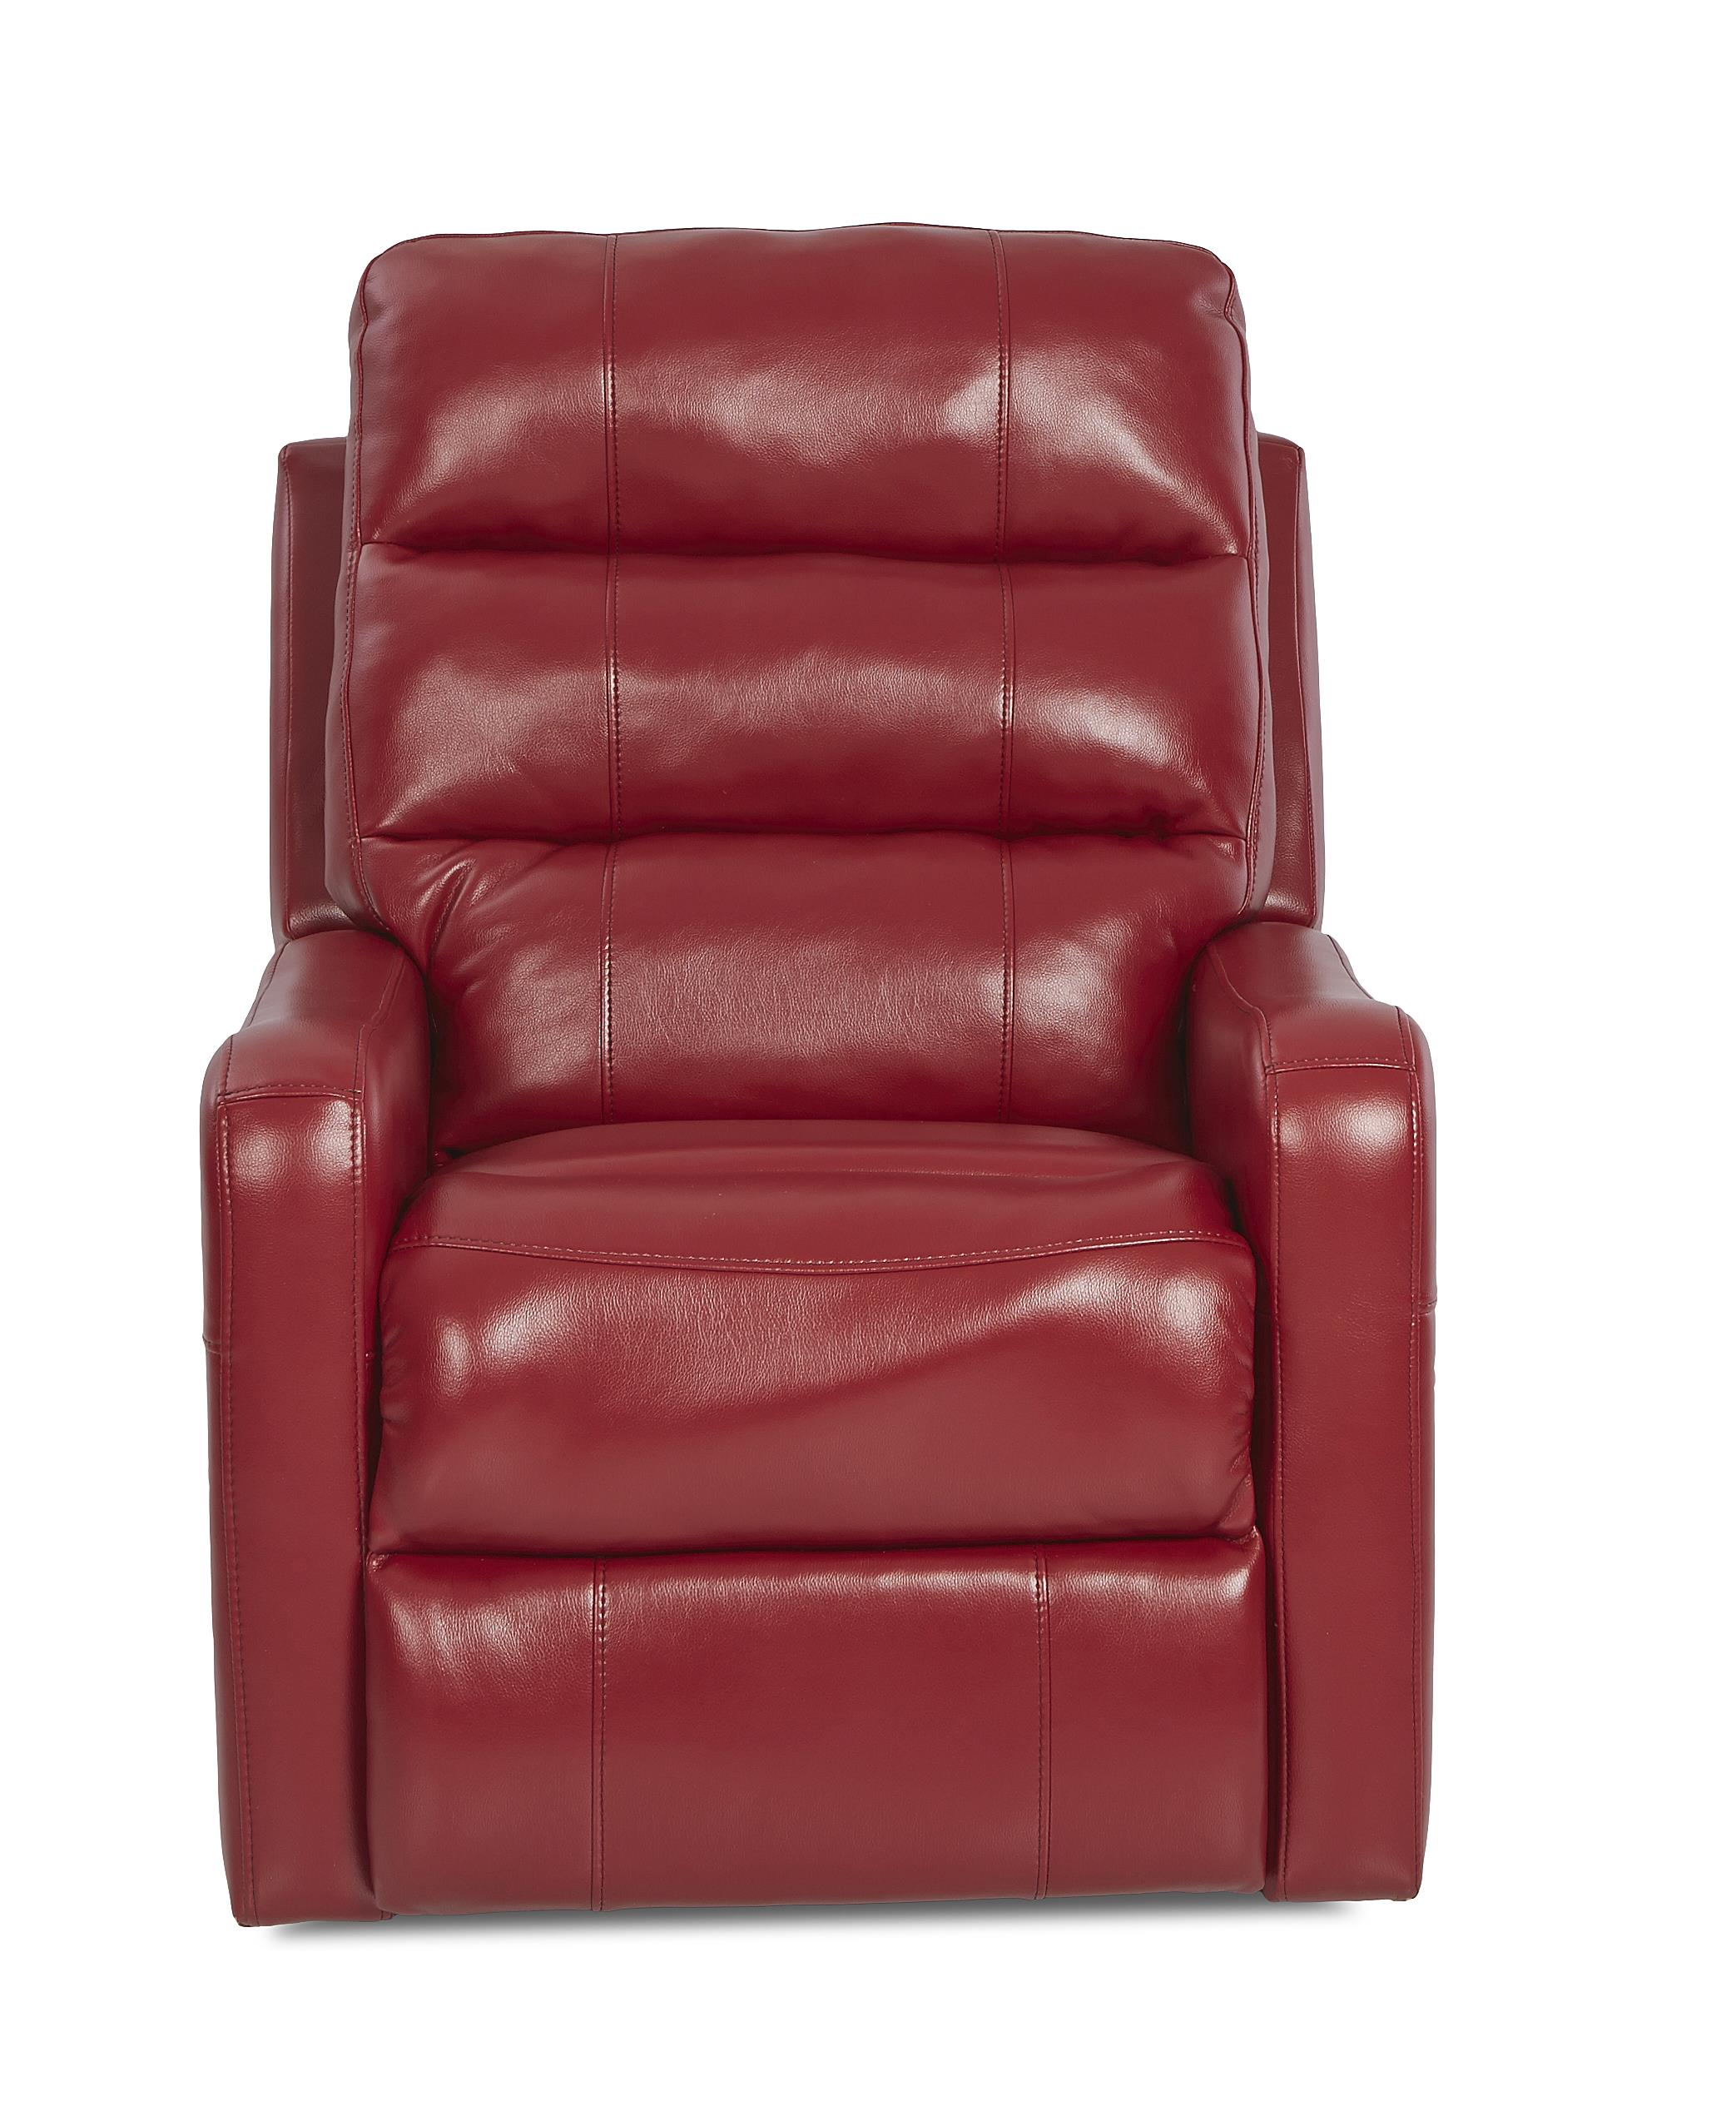 Contemporary Swivel Gliding Reclining Chair